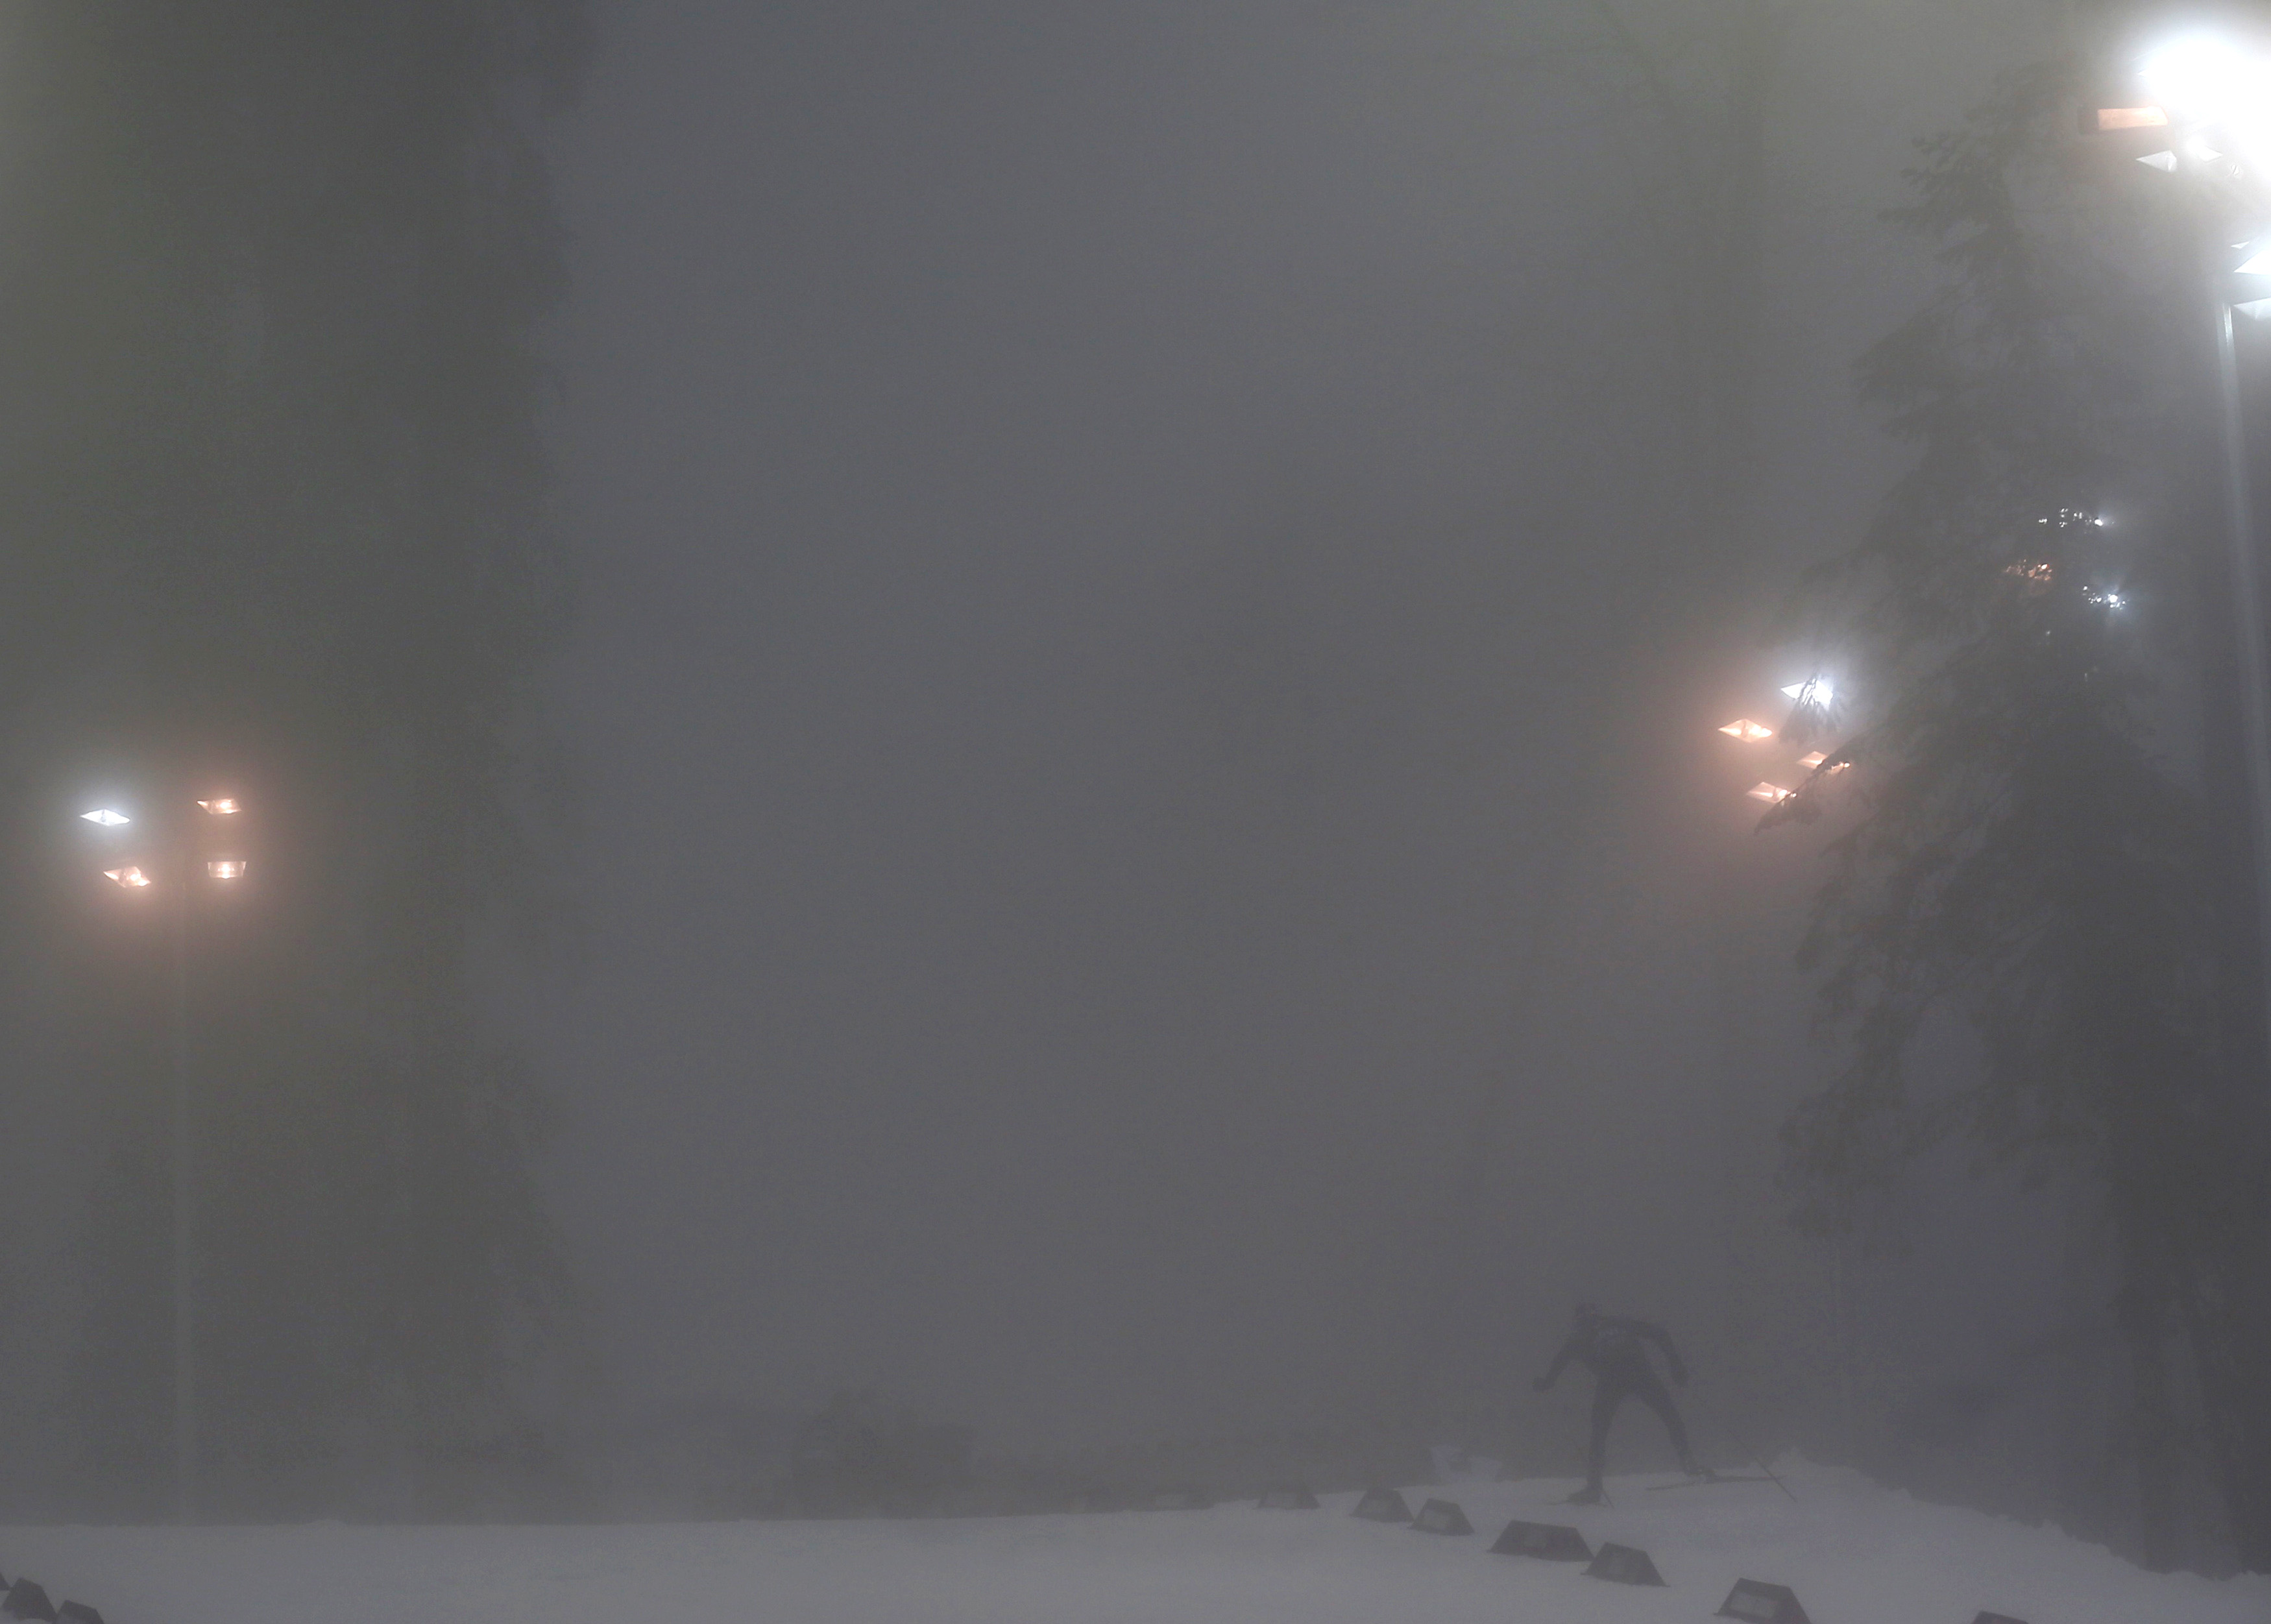 A skier travels amid heavy fog at the Laura Cross Country Ski and Biathlon Center.